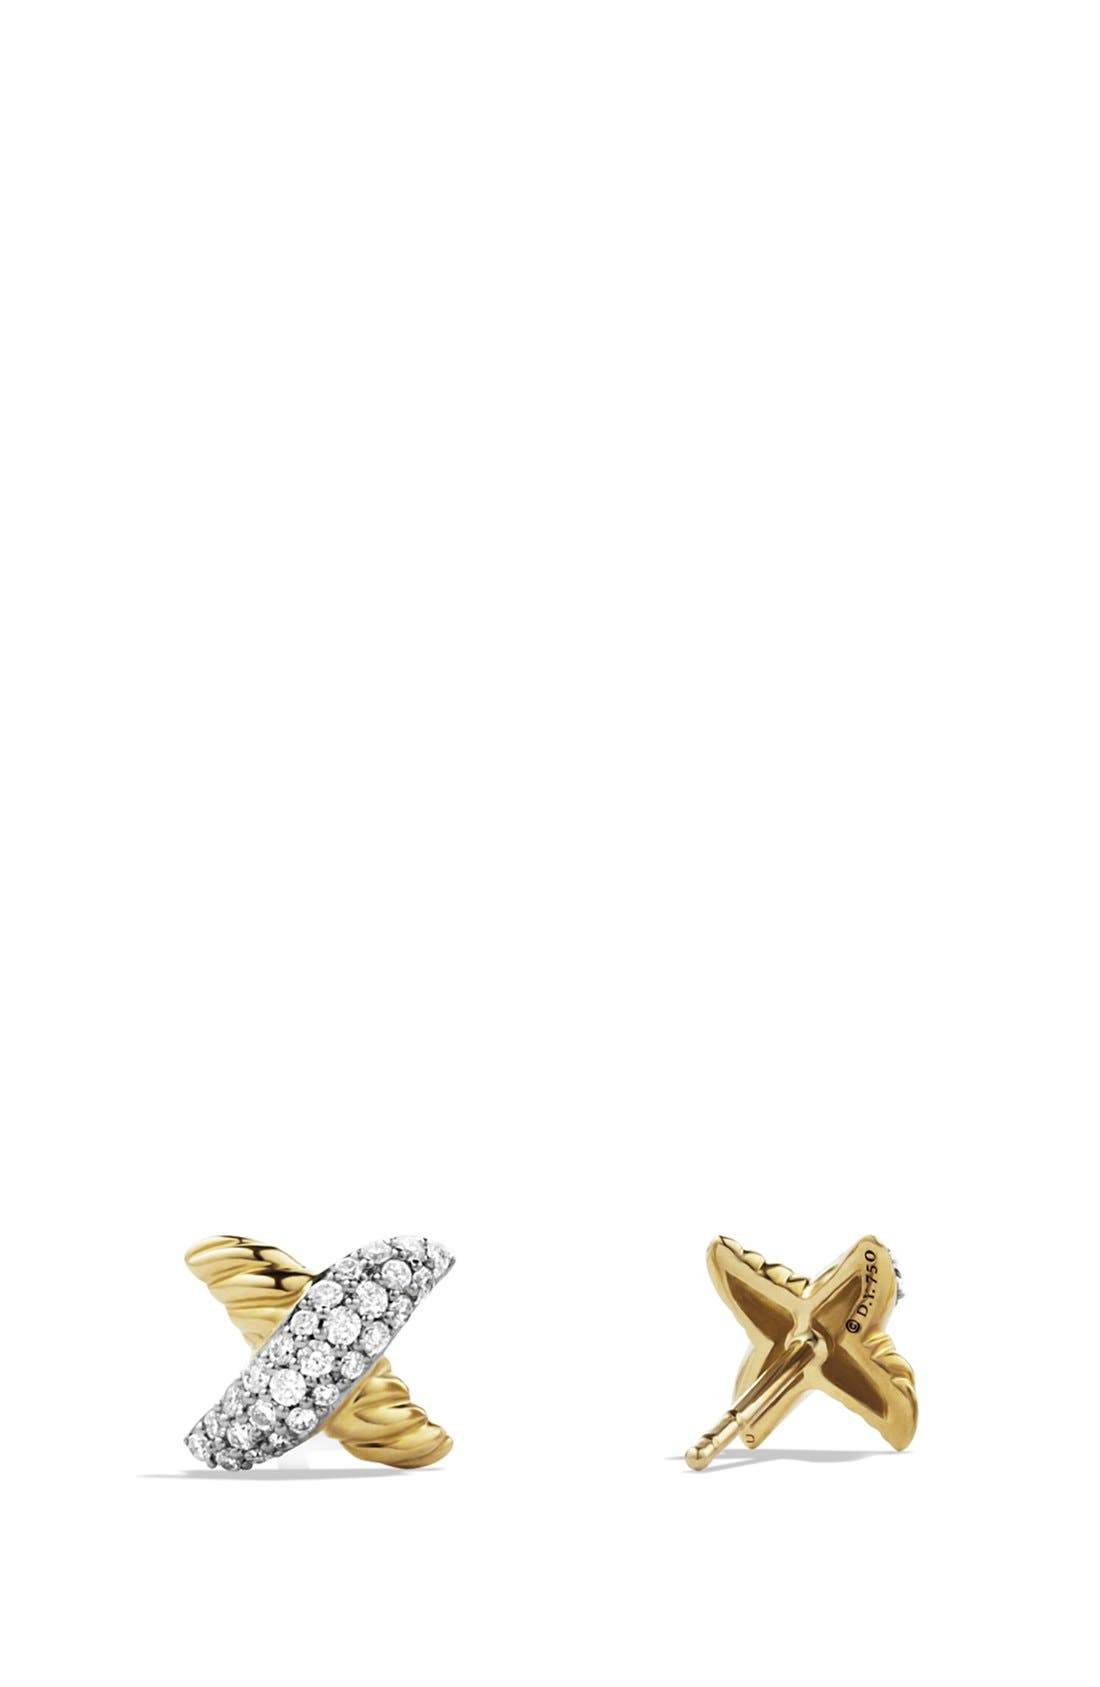 'X' Petite Earrings with Diamonds and Gold,                             Alternate thumbnail 2, color,                             DIAMOND